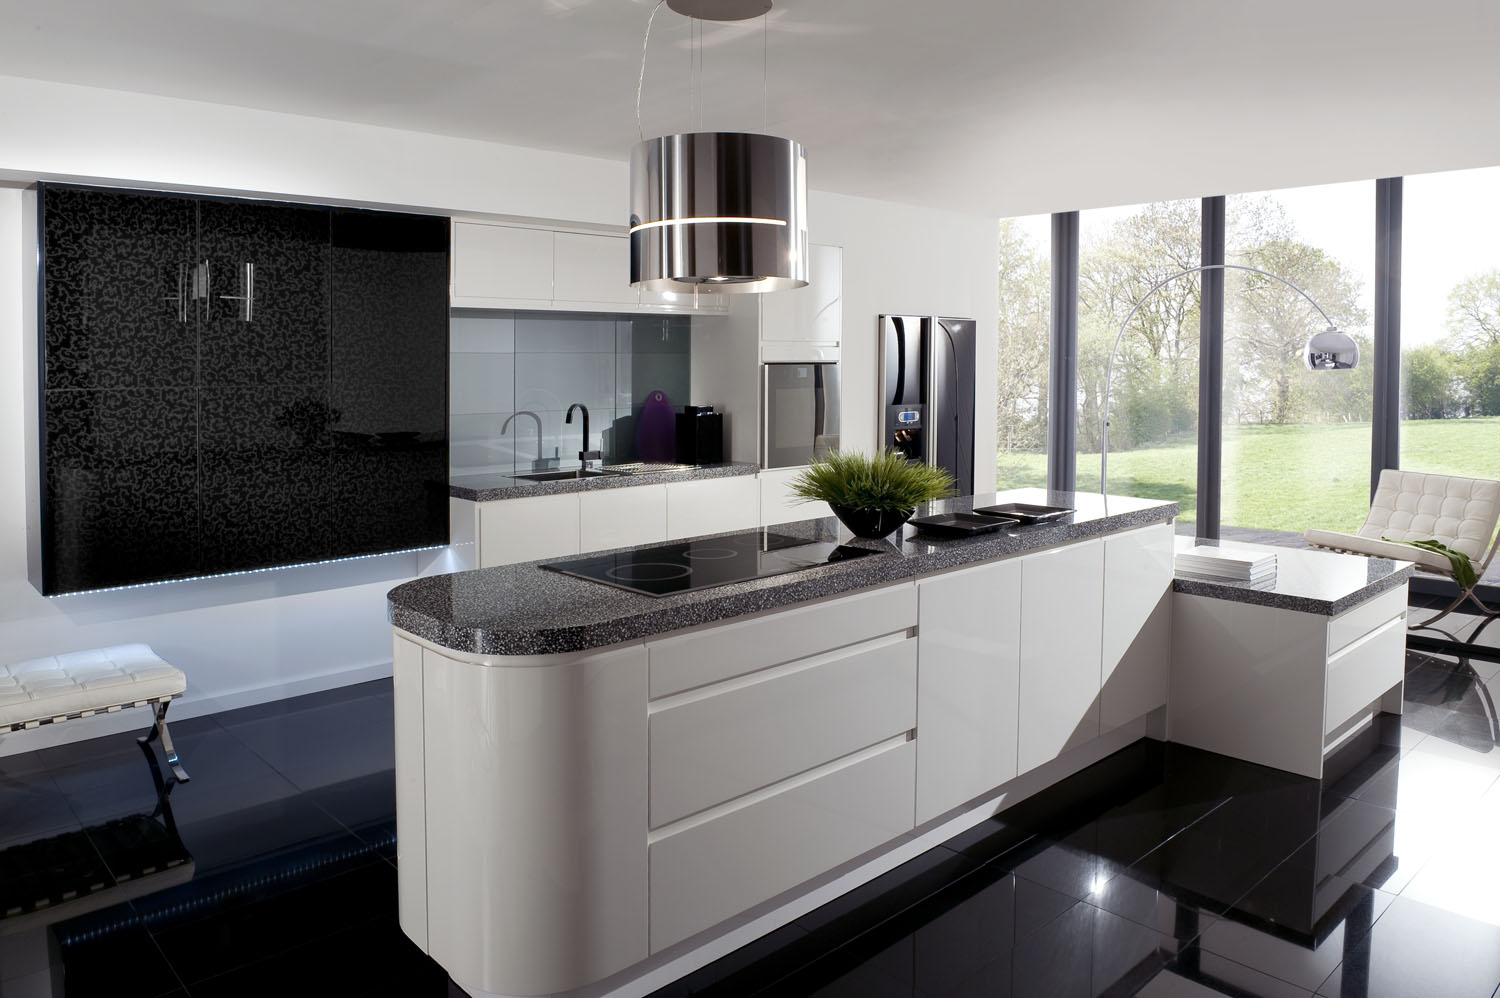 Modern Black and White Kitchen photo - 6